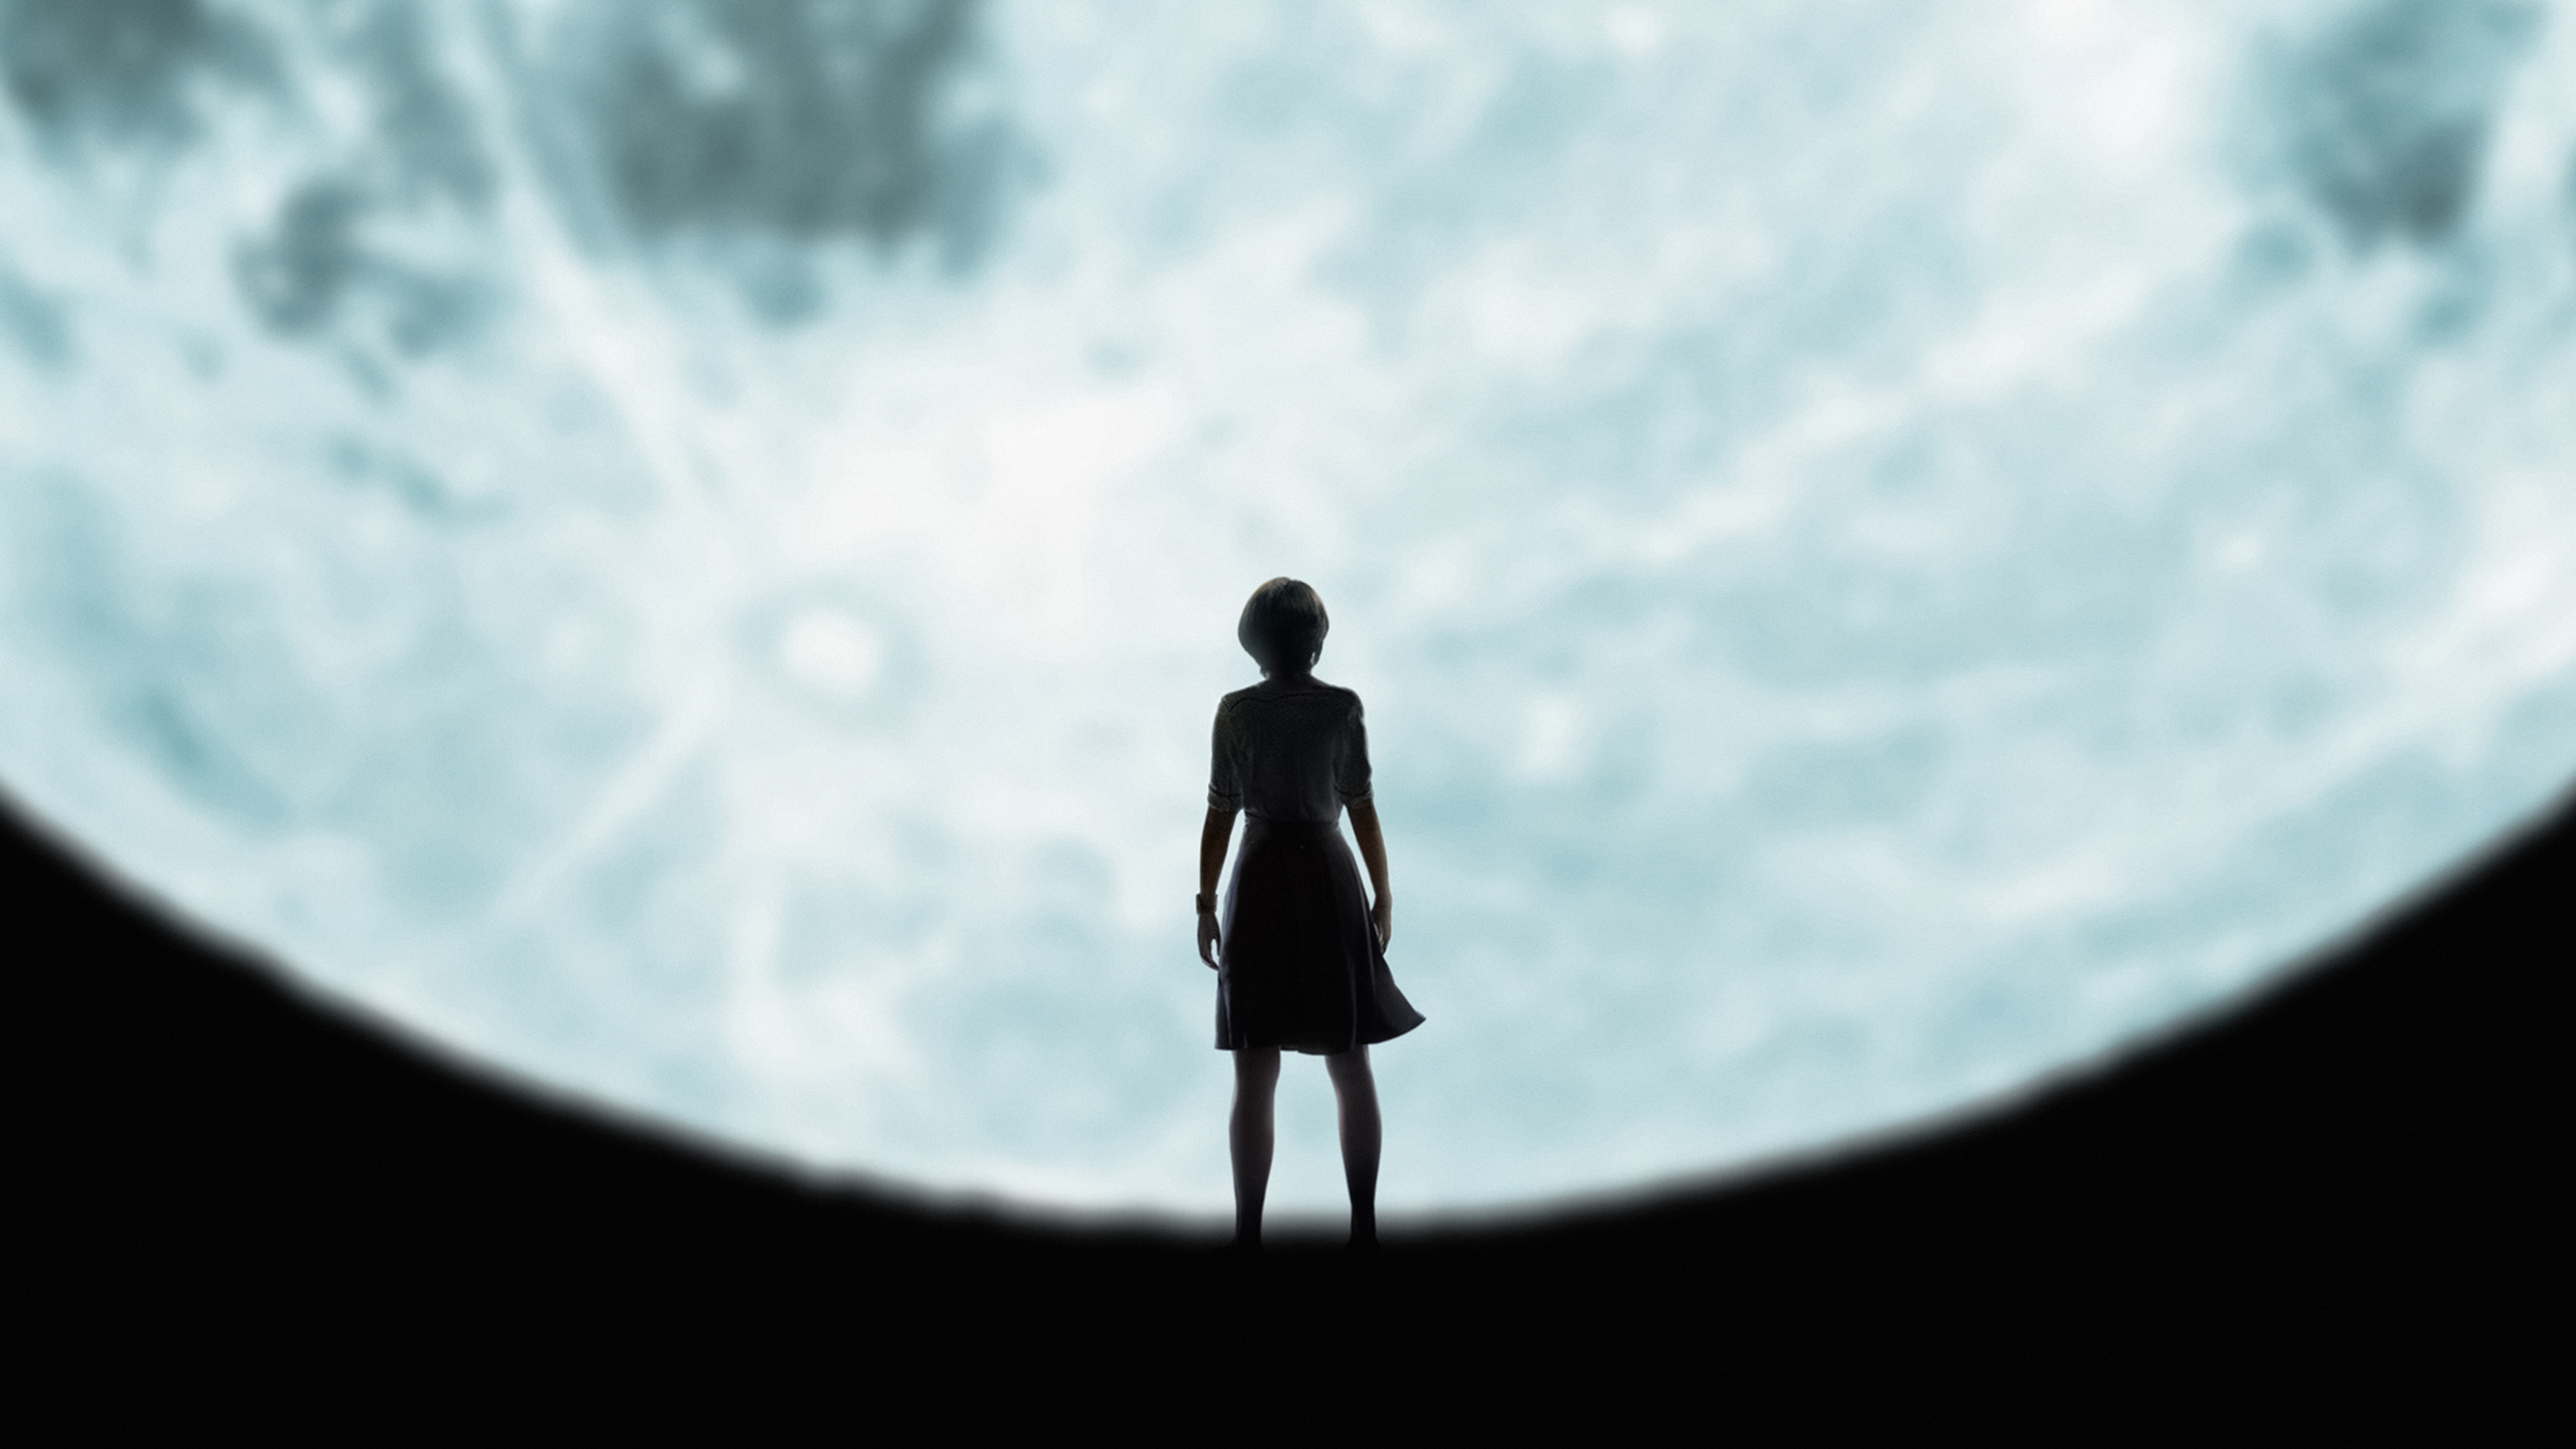 lucy in the sky 1569187520 - Lucy In The Sky - movies wallpapers, lucy in the sky wallpapers, hd-wallpapers, 4k-wallpapers, 2019 movies wallpapers